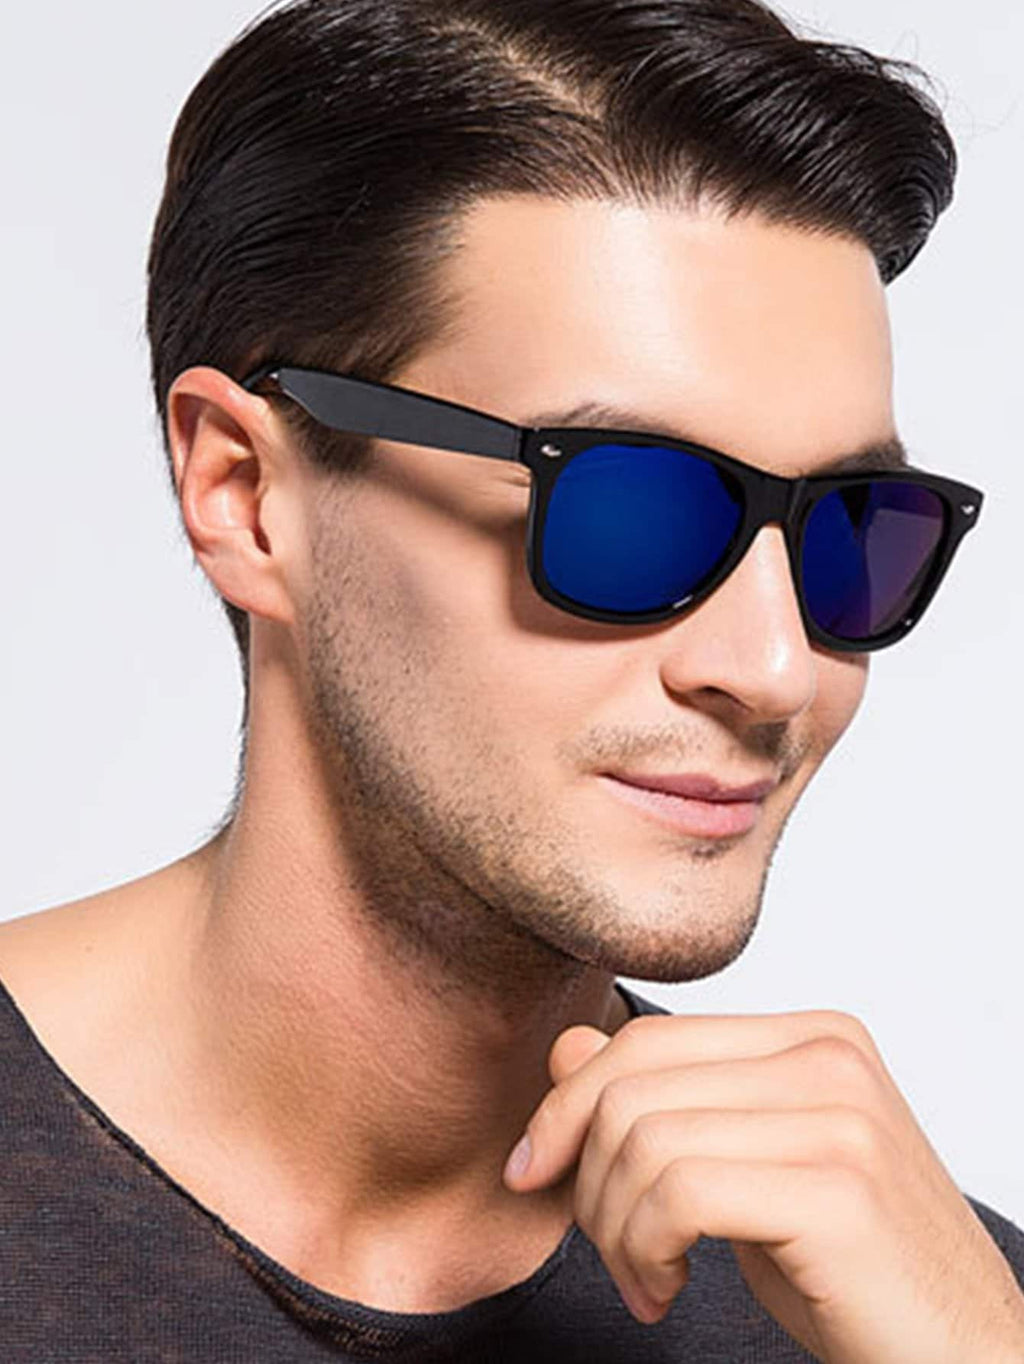 Sports Sunglasses - Men Mirror Lens Sunglasses